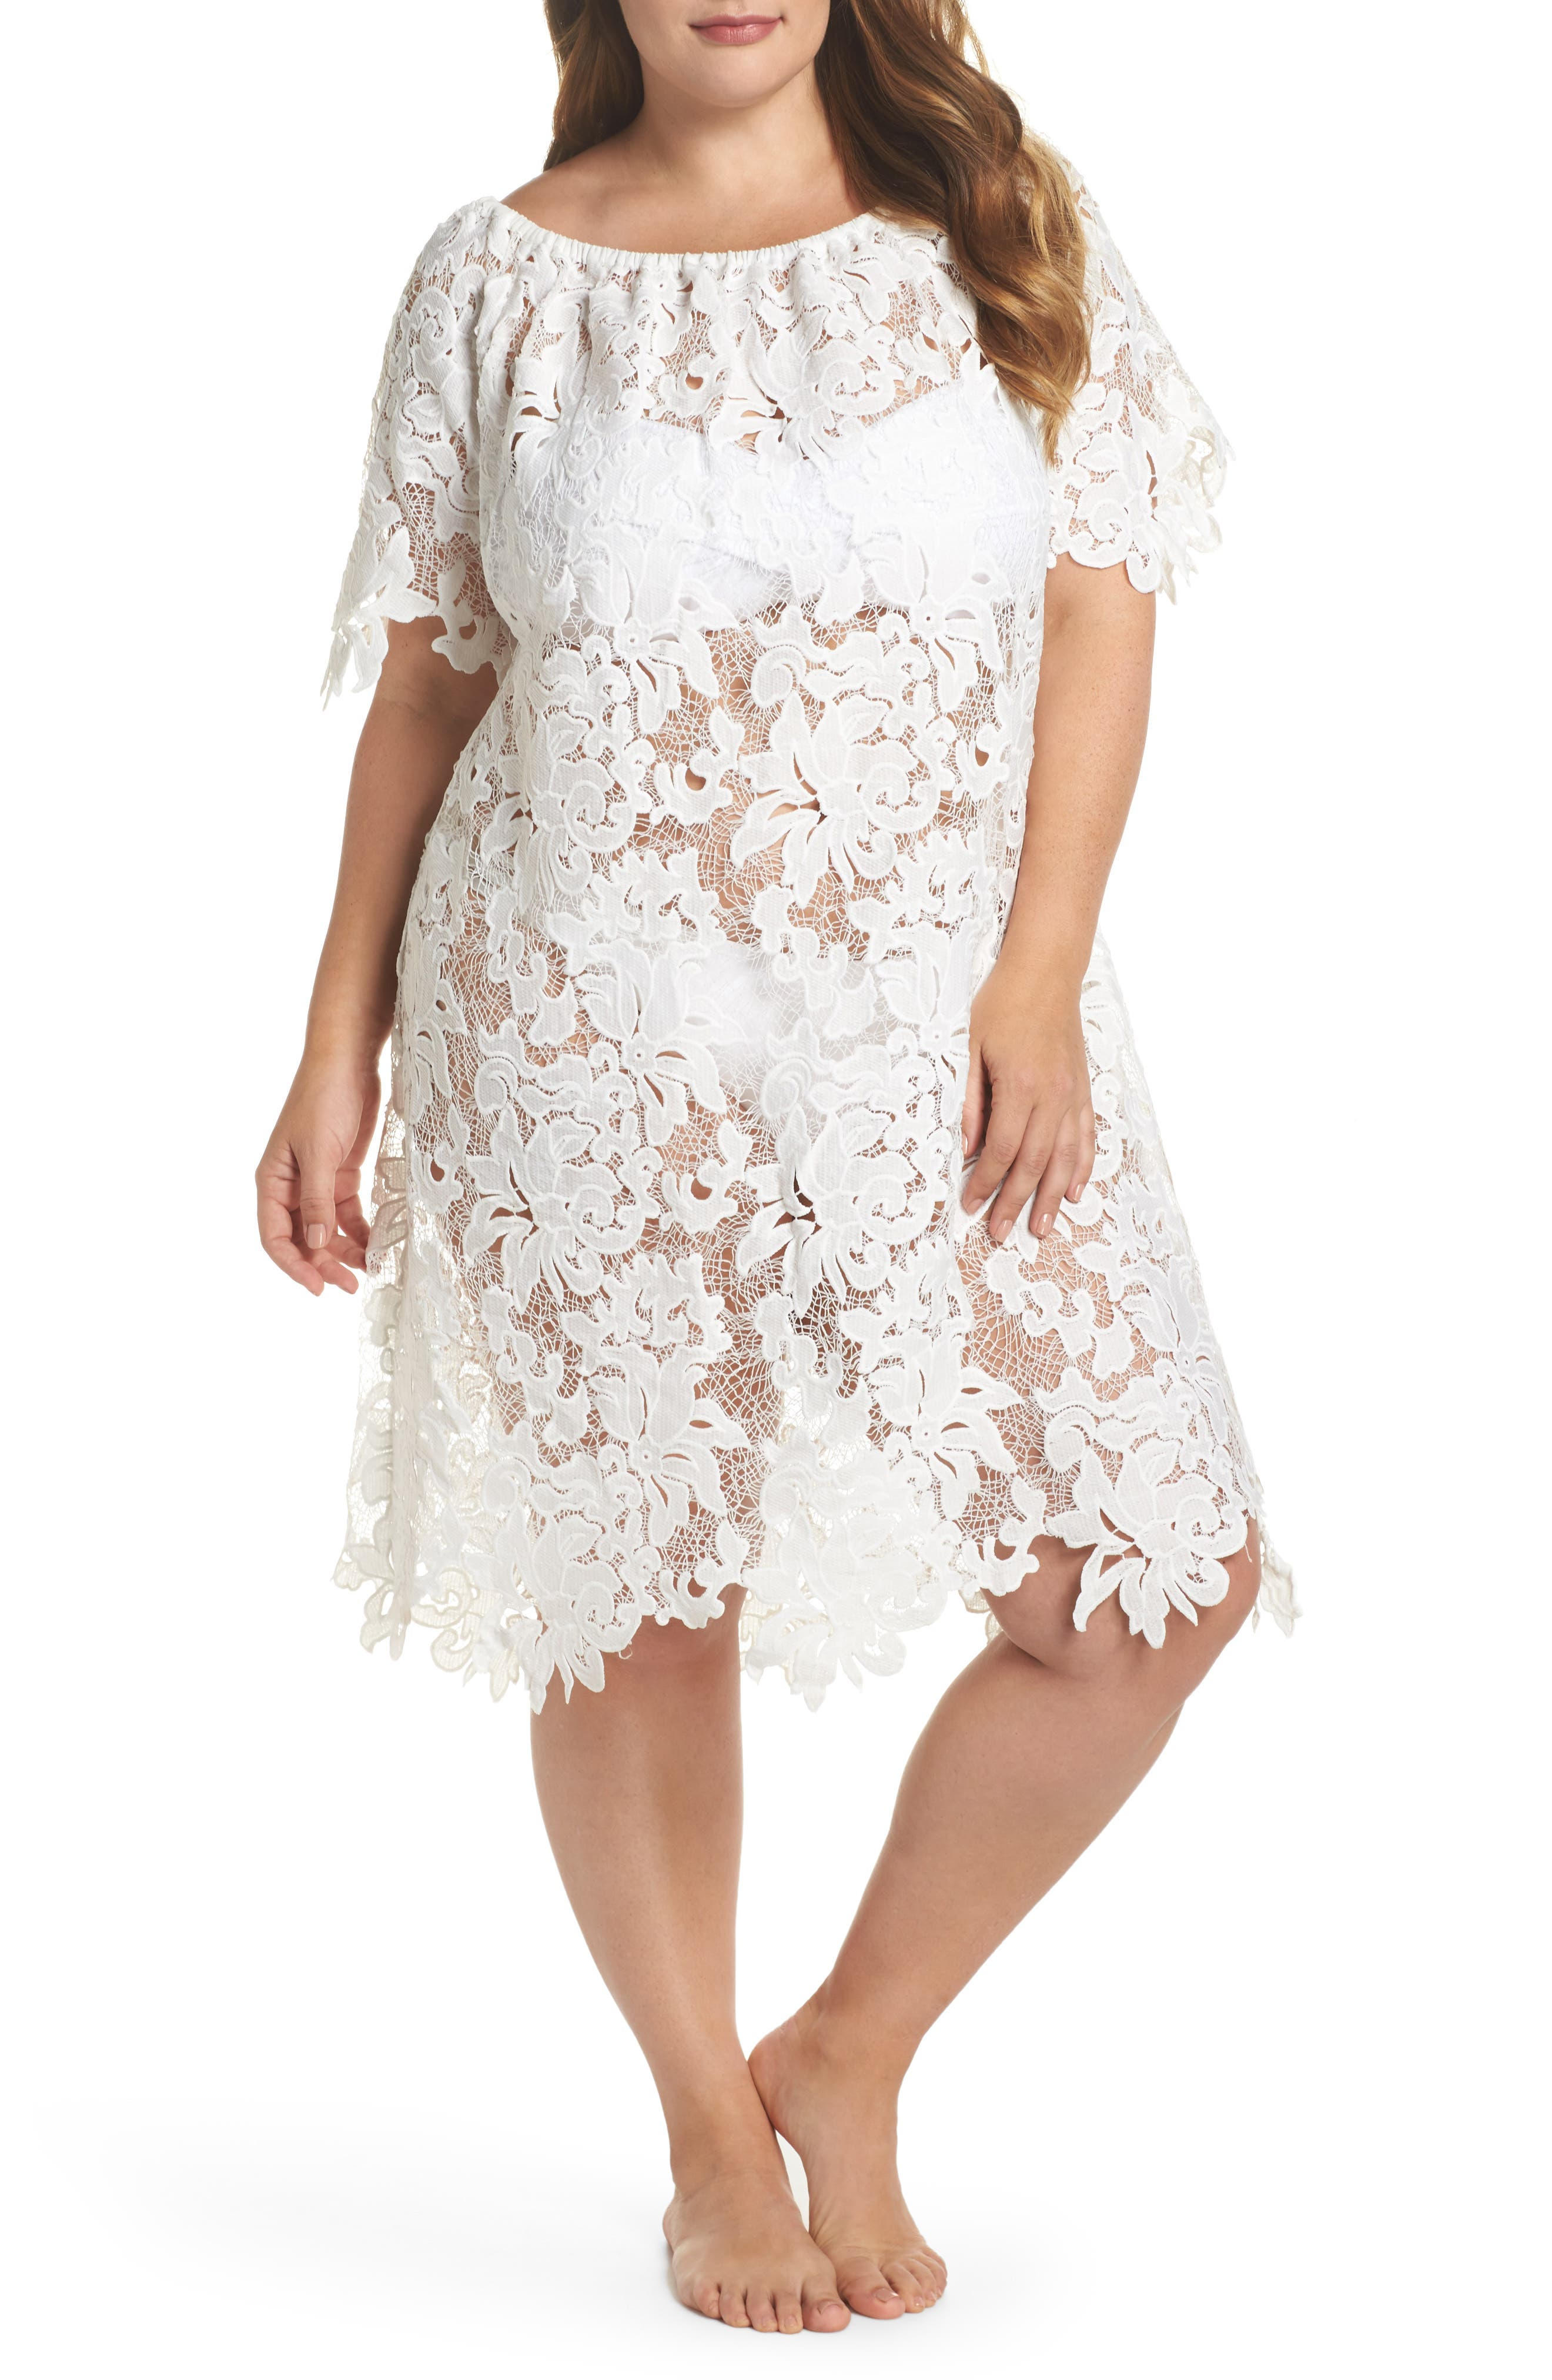 Main Image - Muche et Muchette Ode Lace Cover-Up Dress (Plus Size)